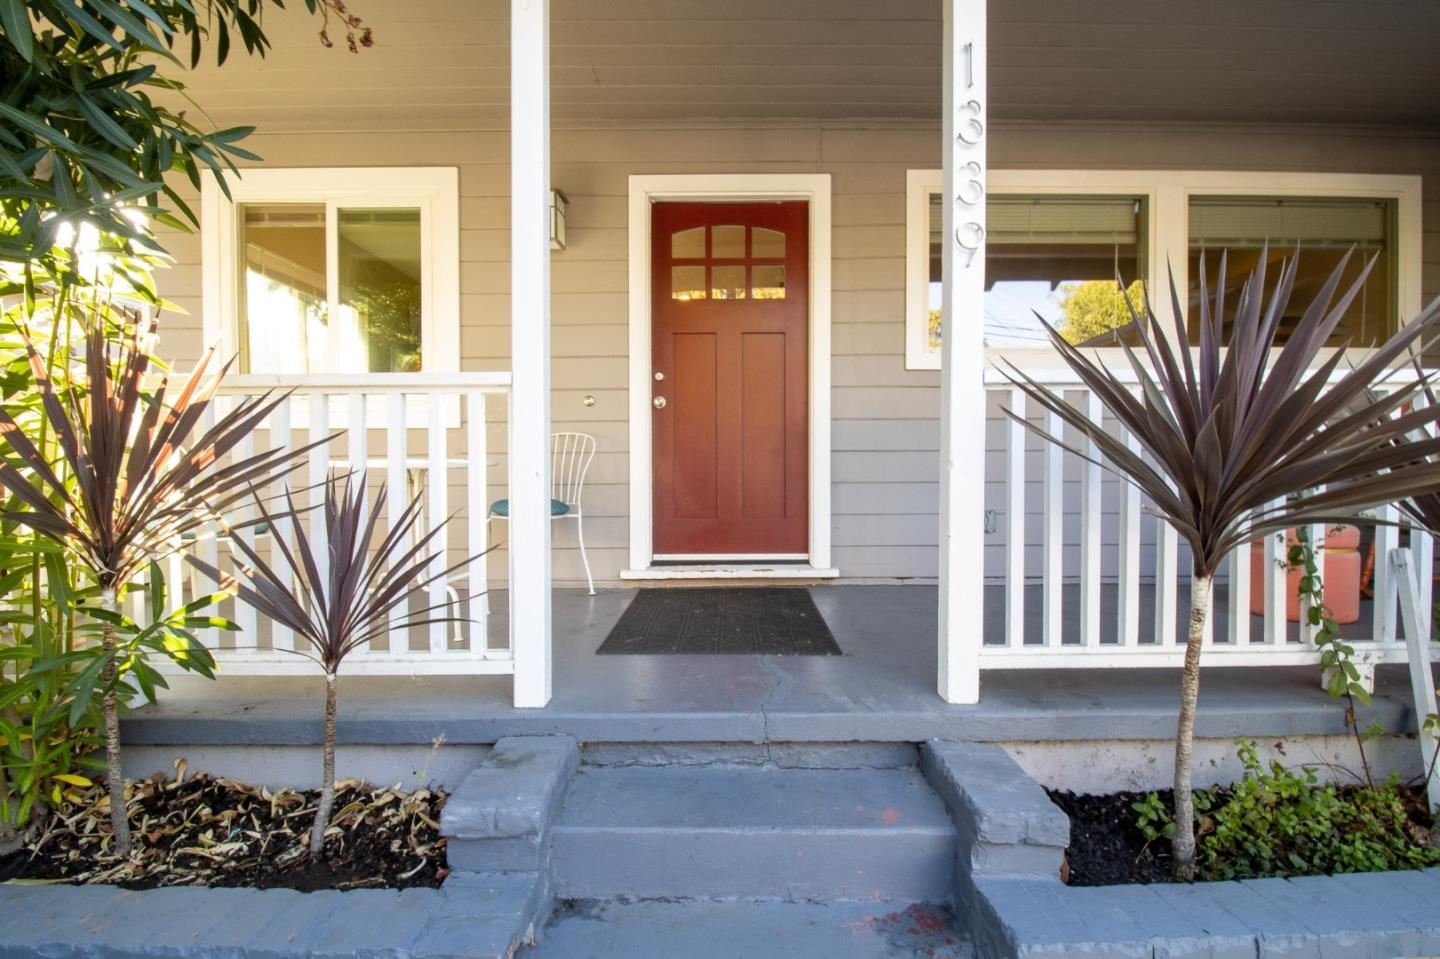 Photo for 1339 Sevier AVE, MENLO PARK, CA 94025 (MLS # ML81814294)